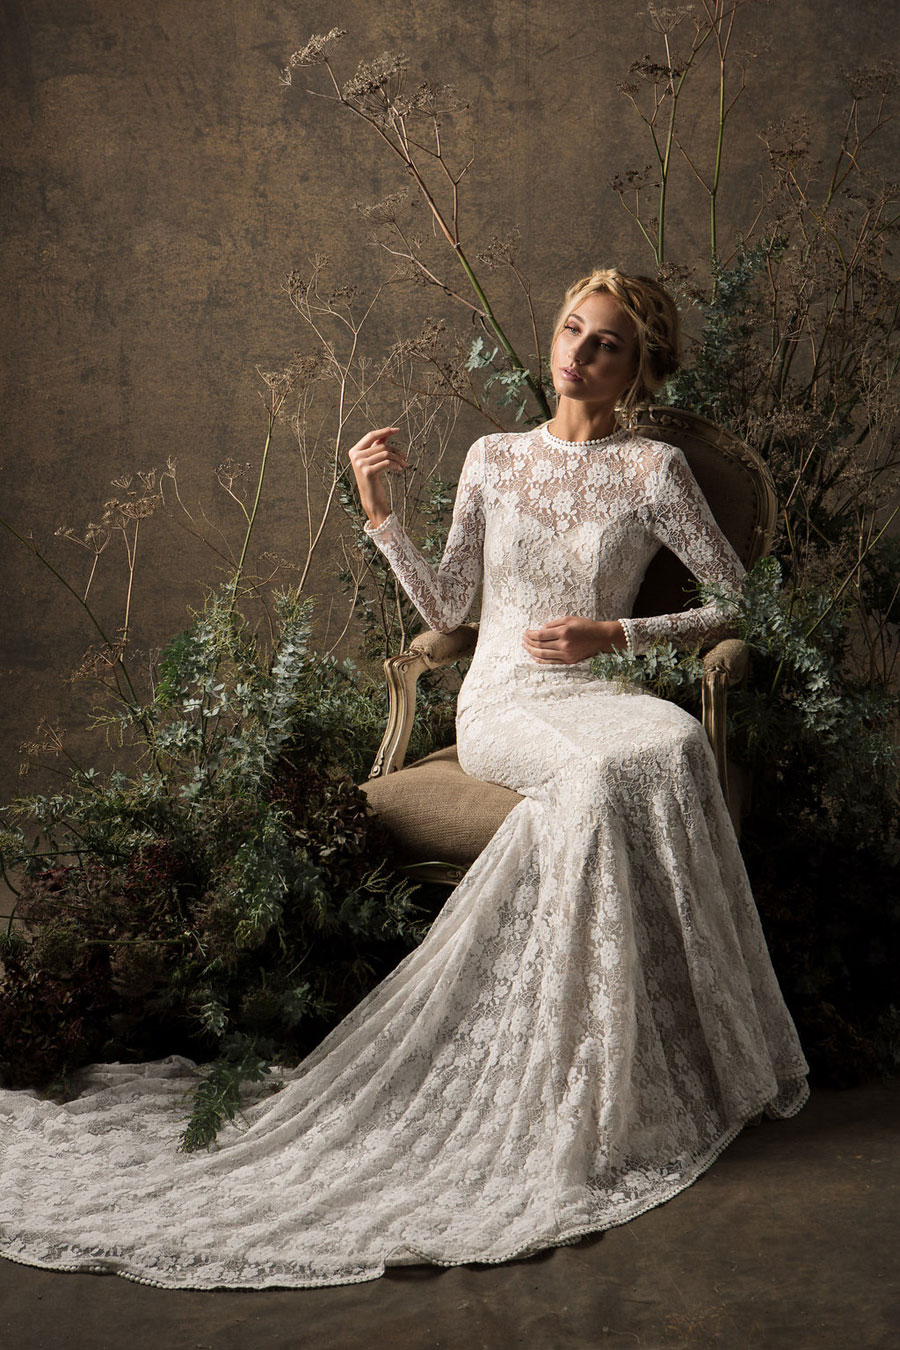 The New 'Cloud Nine' Collection from Dreamers & Lovers: Boho Wedding Dresses!